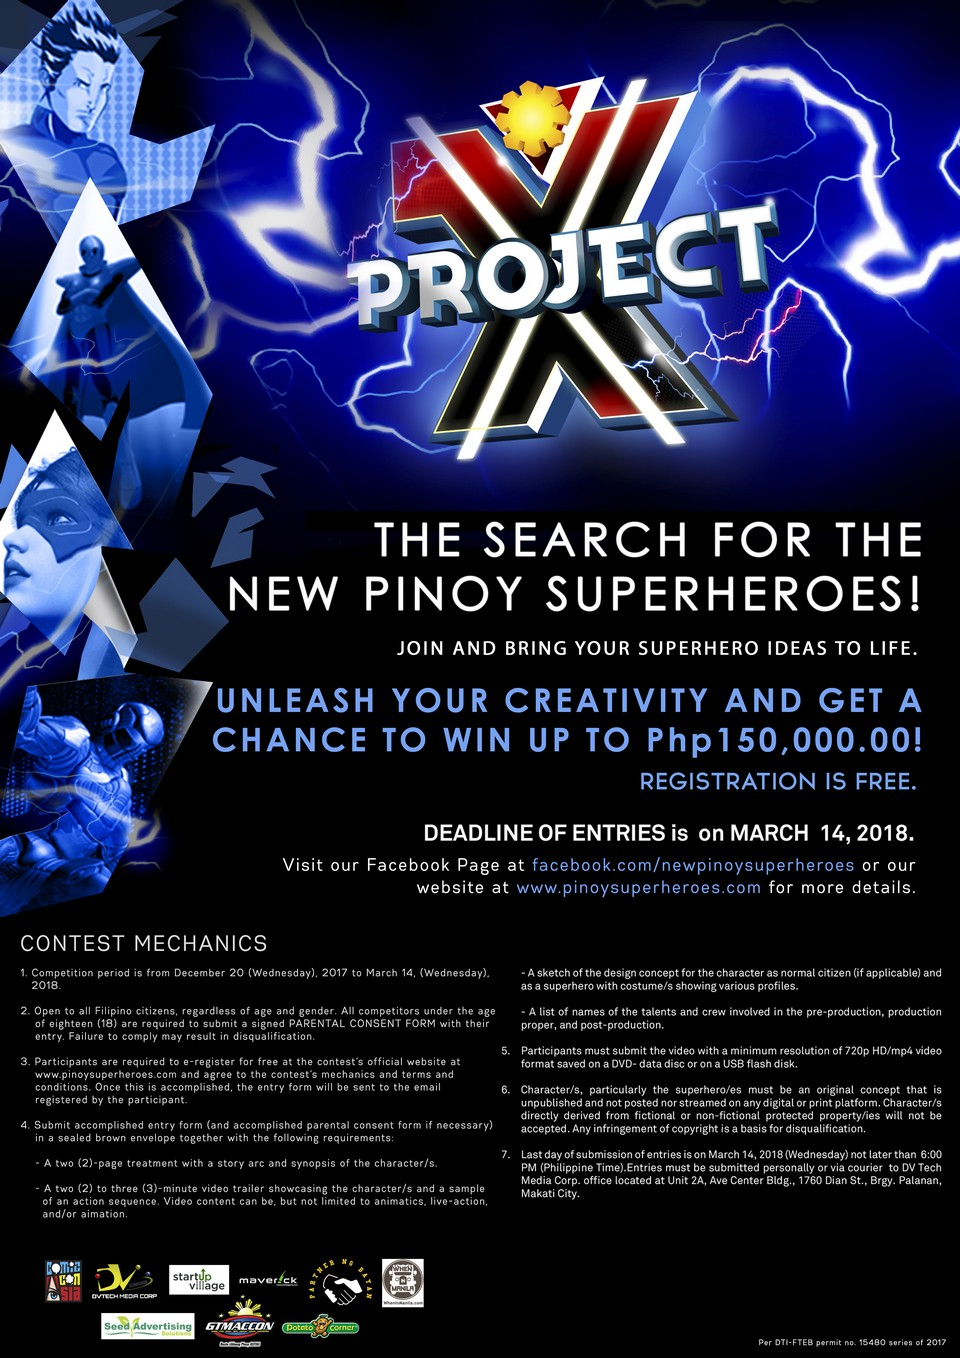 The Search for New Pinoy Superheroes is on with Project X with